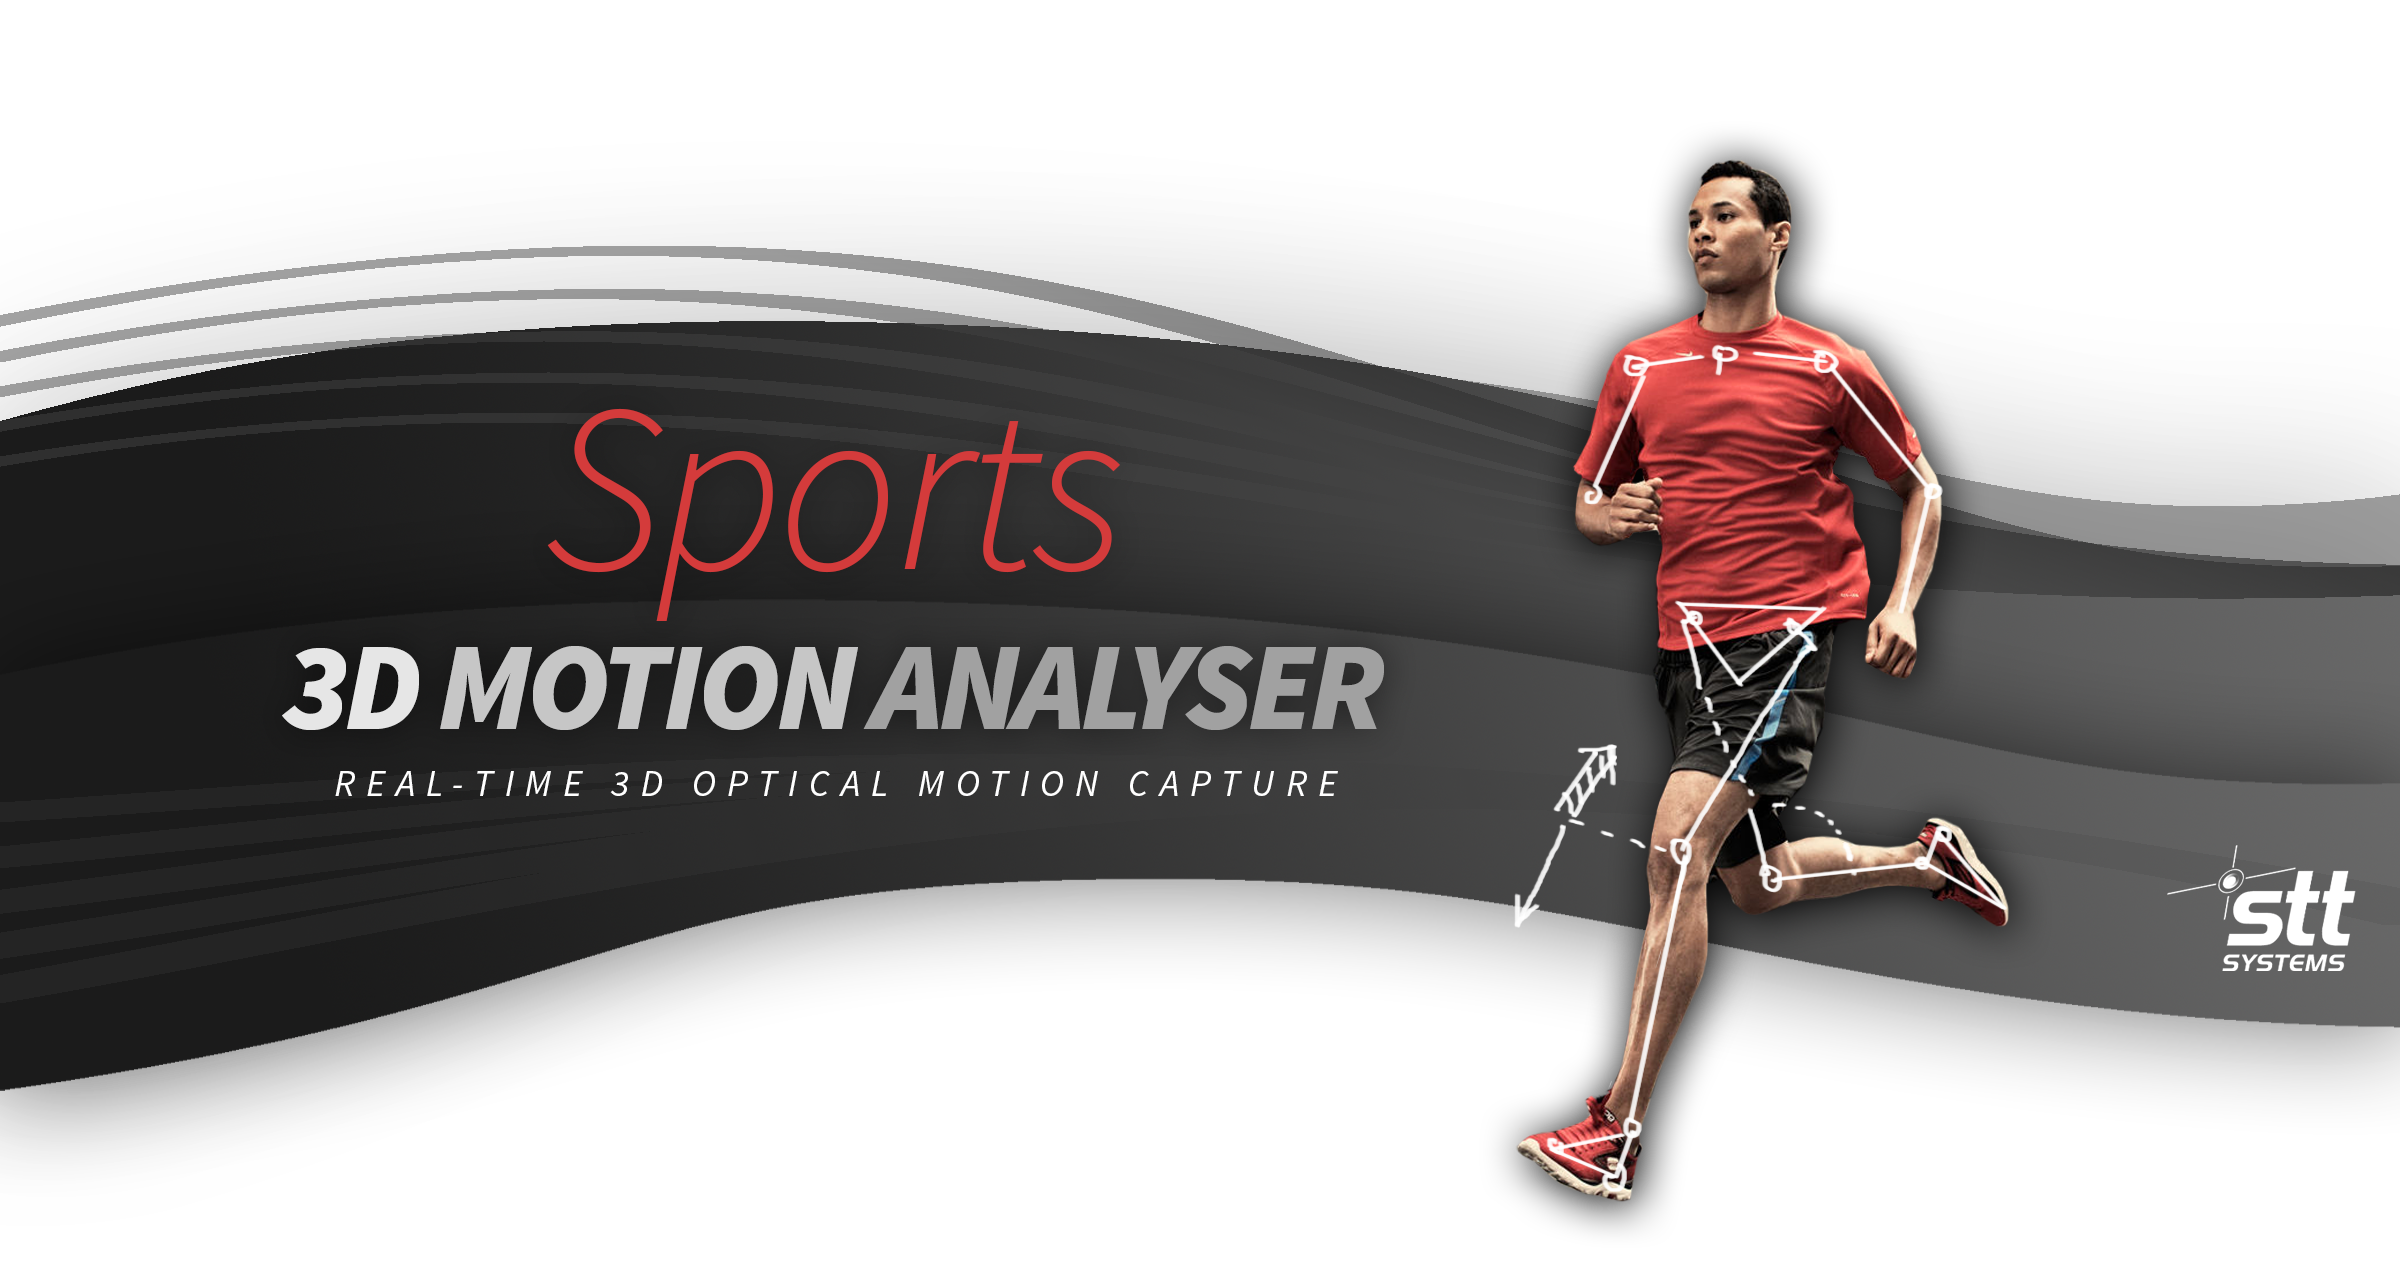 Sports_3DMotionAnalyser.png